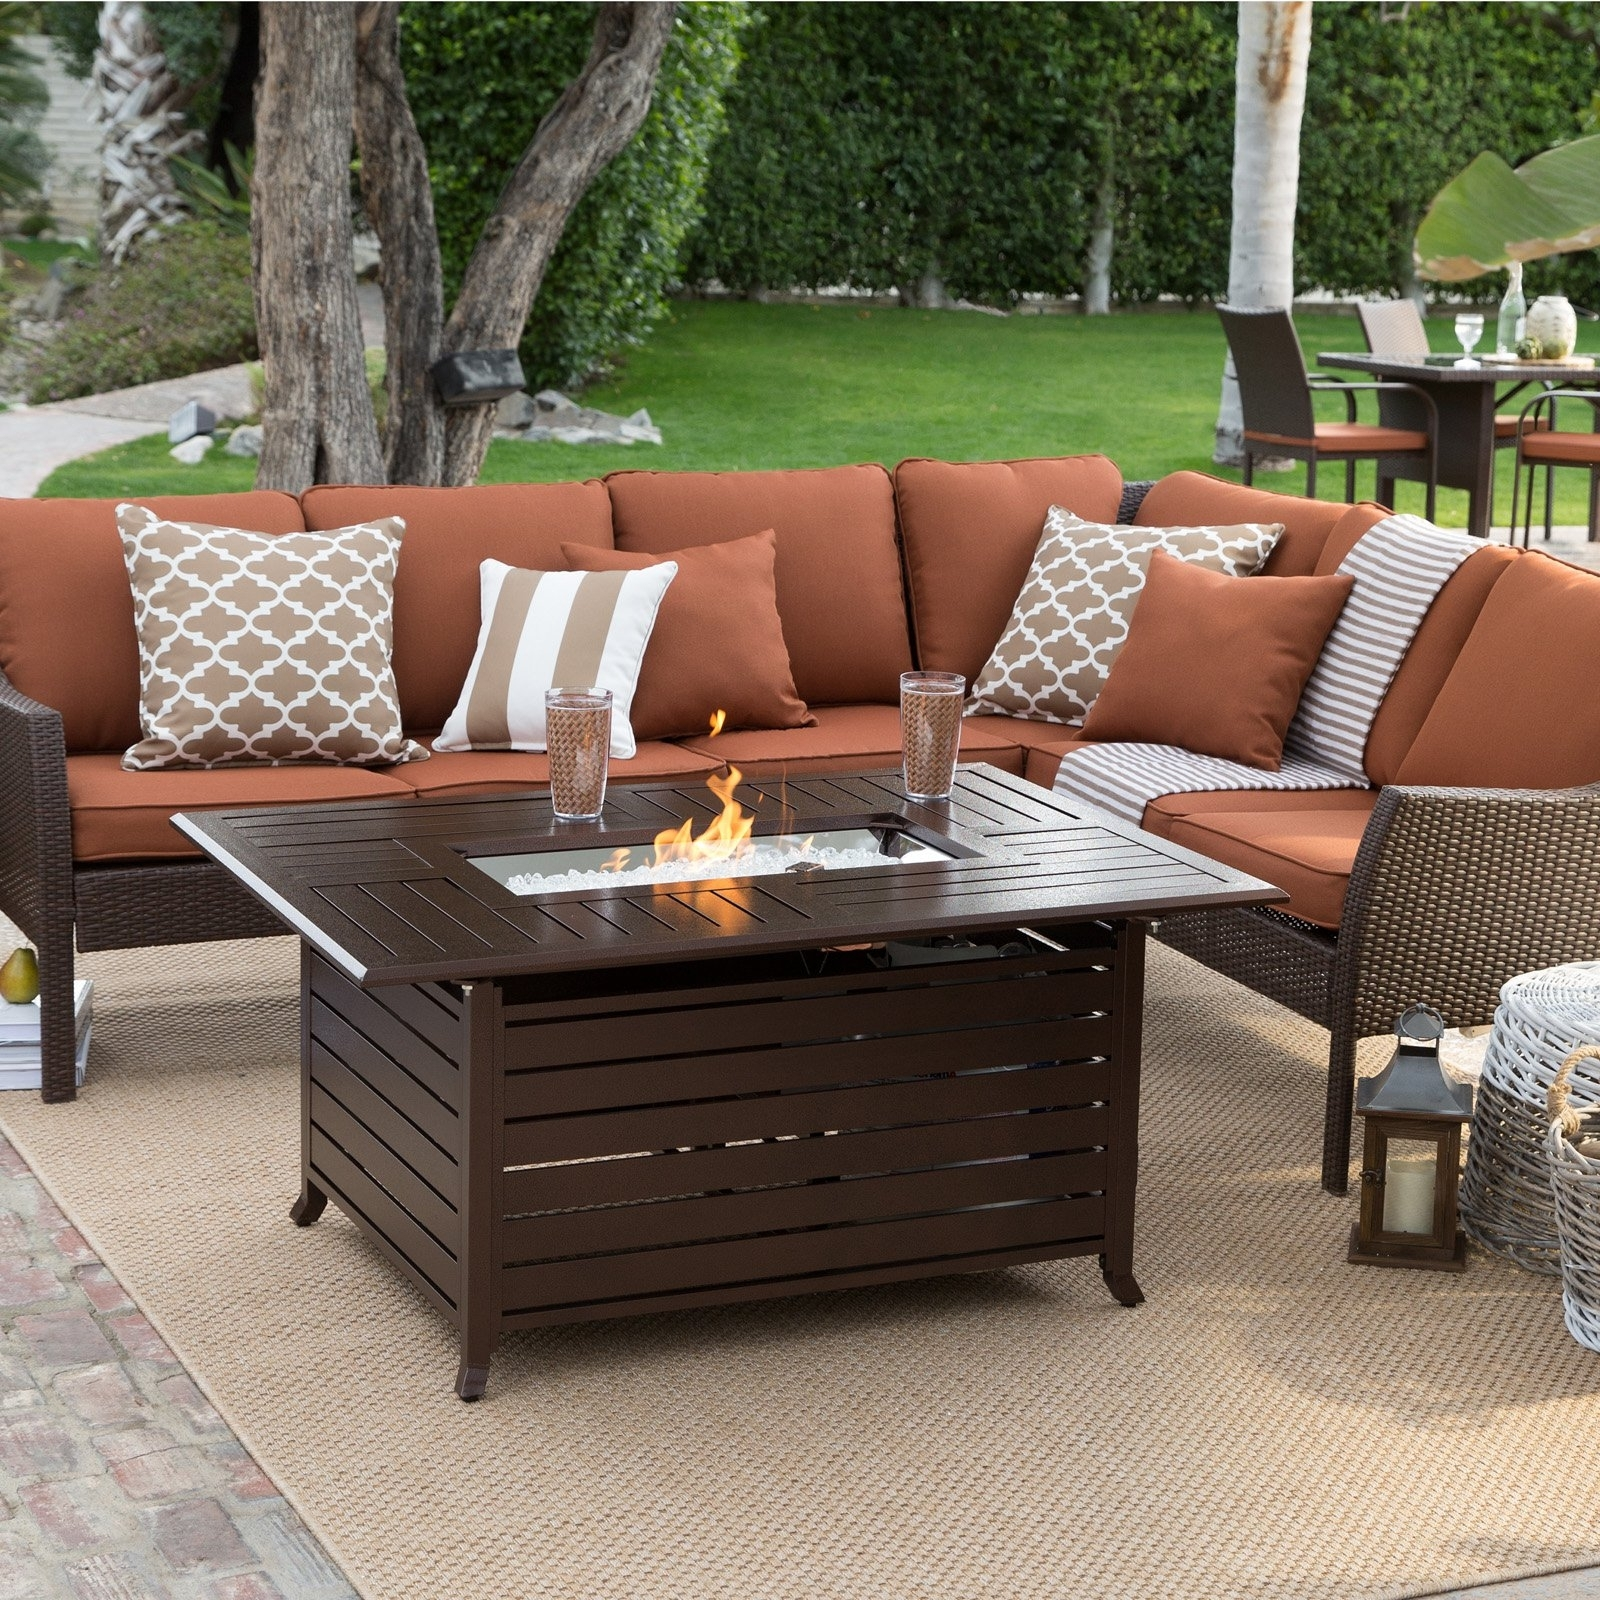 Newest Elegant Fire Pit Chairs For Sale Conversation Sets Deck Furniture Regarding Patio Conversation Sets With Fire Table (View 6 of 20)